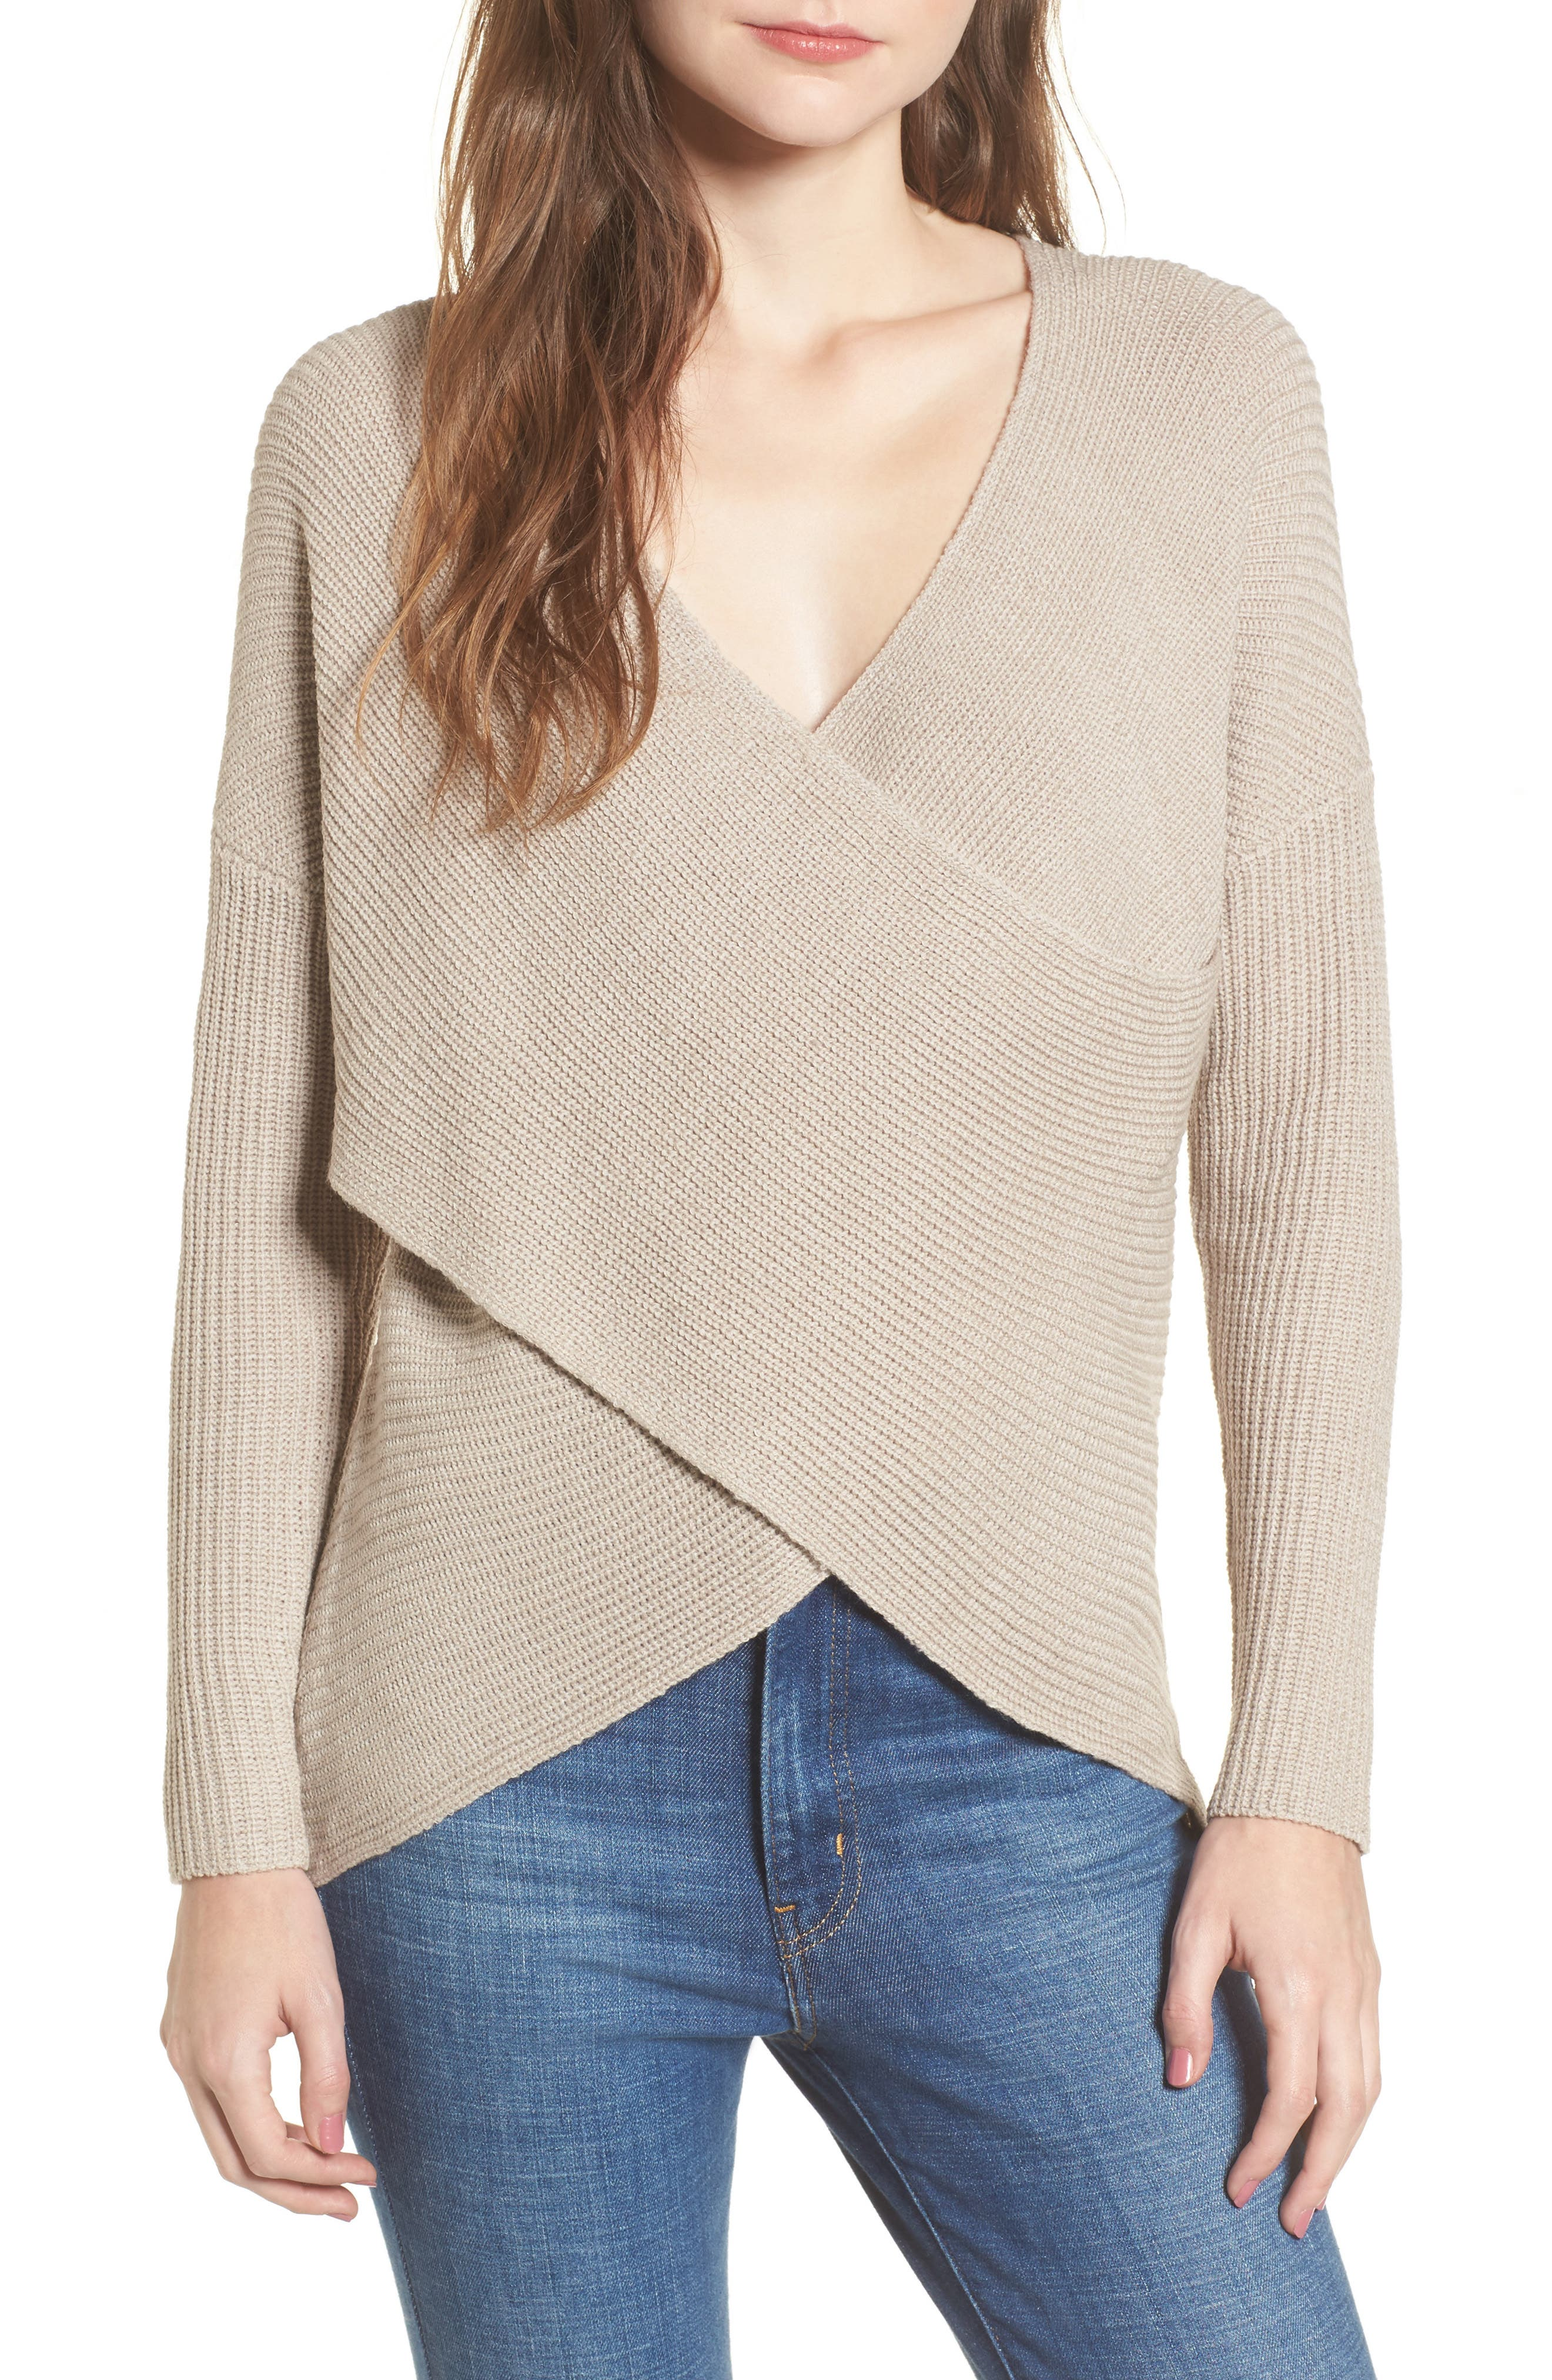 Alternate Image 1 Selected - ASTR the Label Wrap Front Sweater